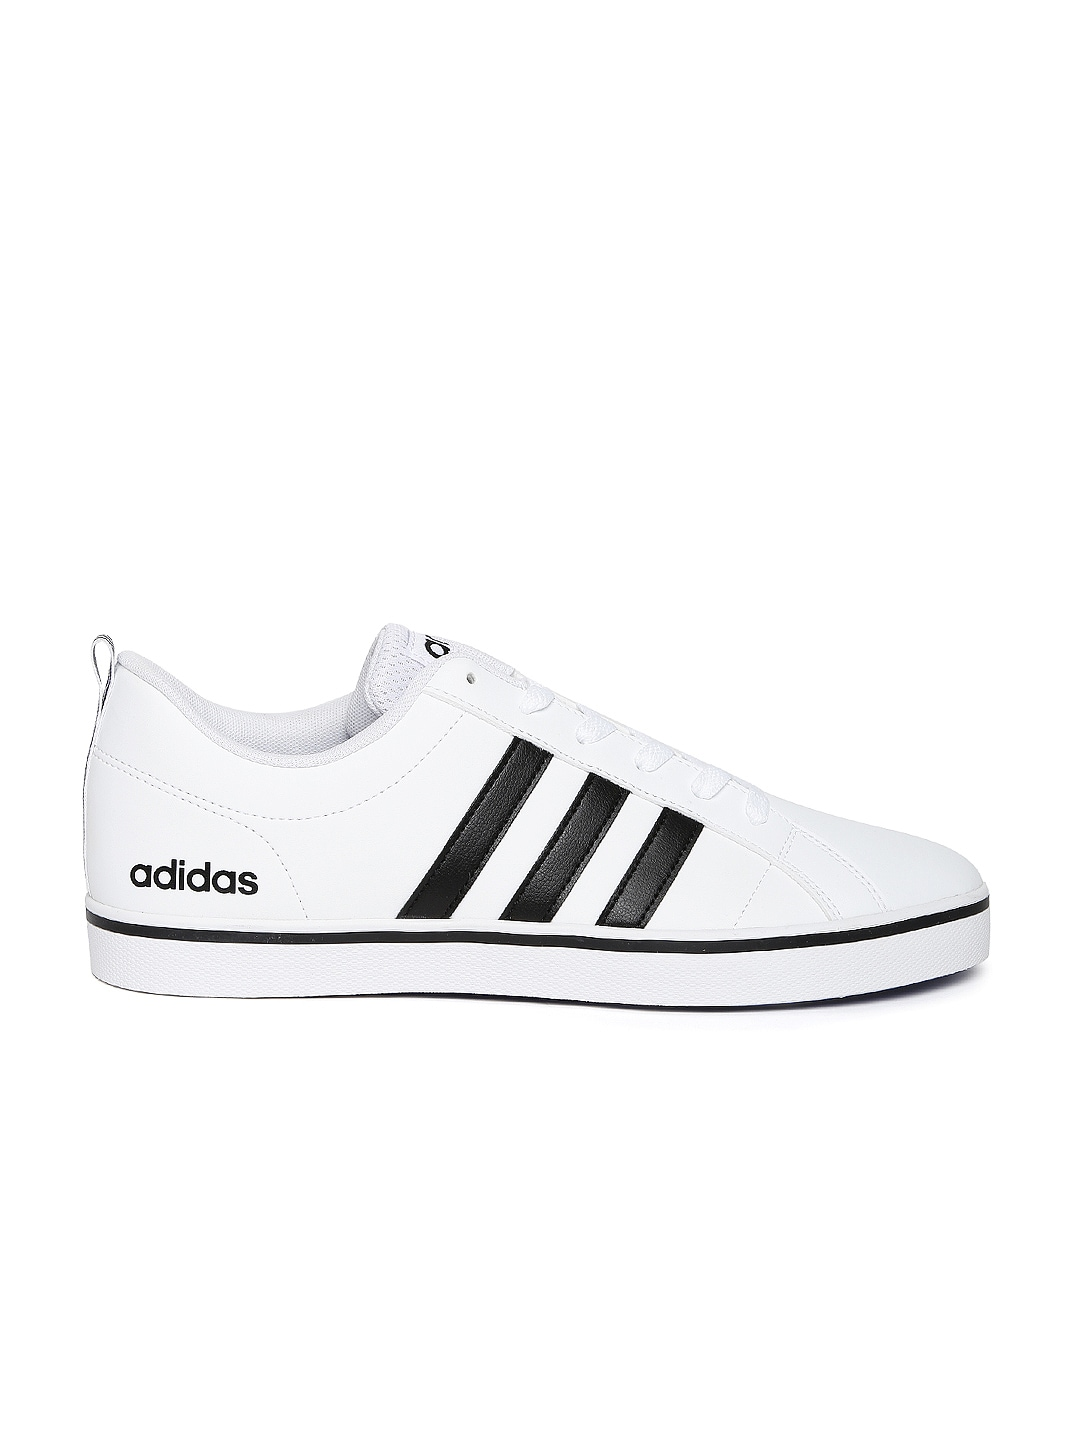 d4e4f55f8 Men Shoes Adidas uk Casual For Lfc co Wallbank Neo wE4Or4qx